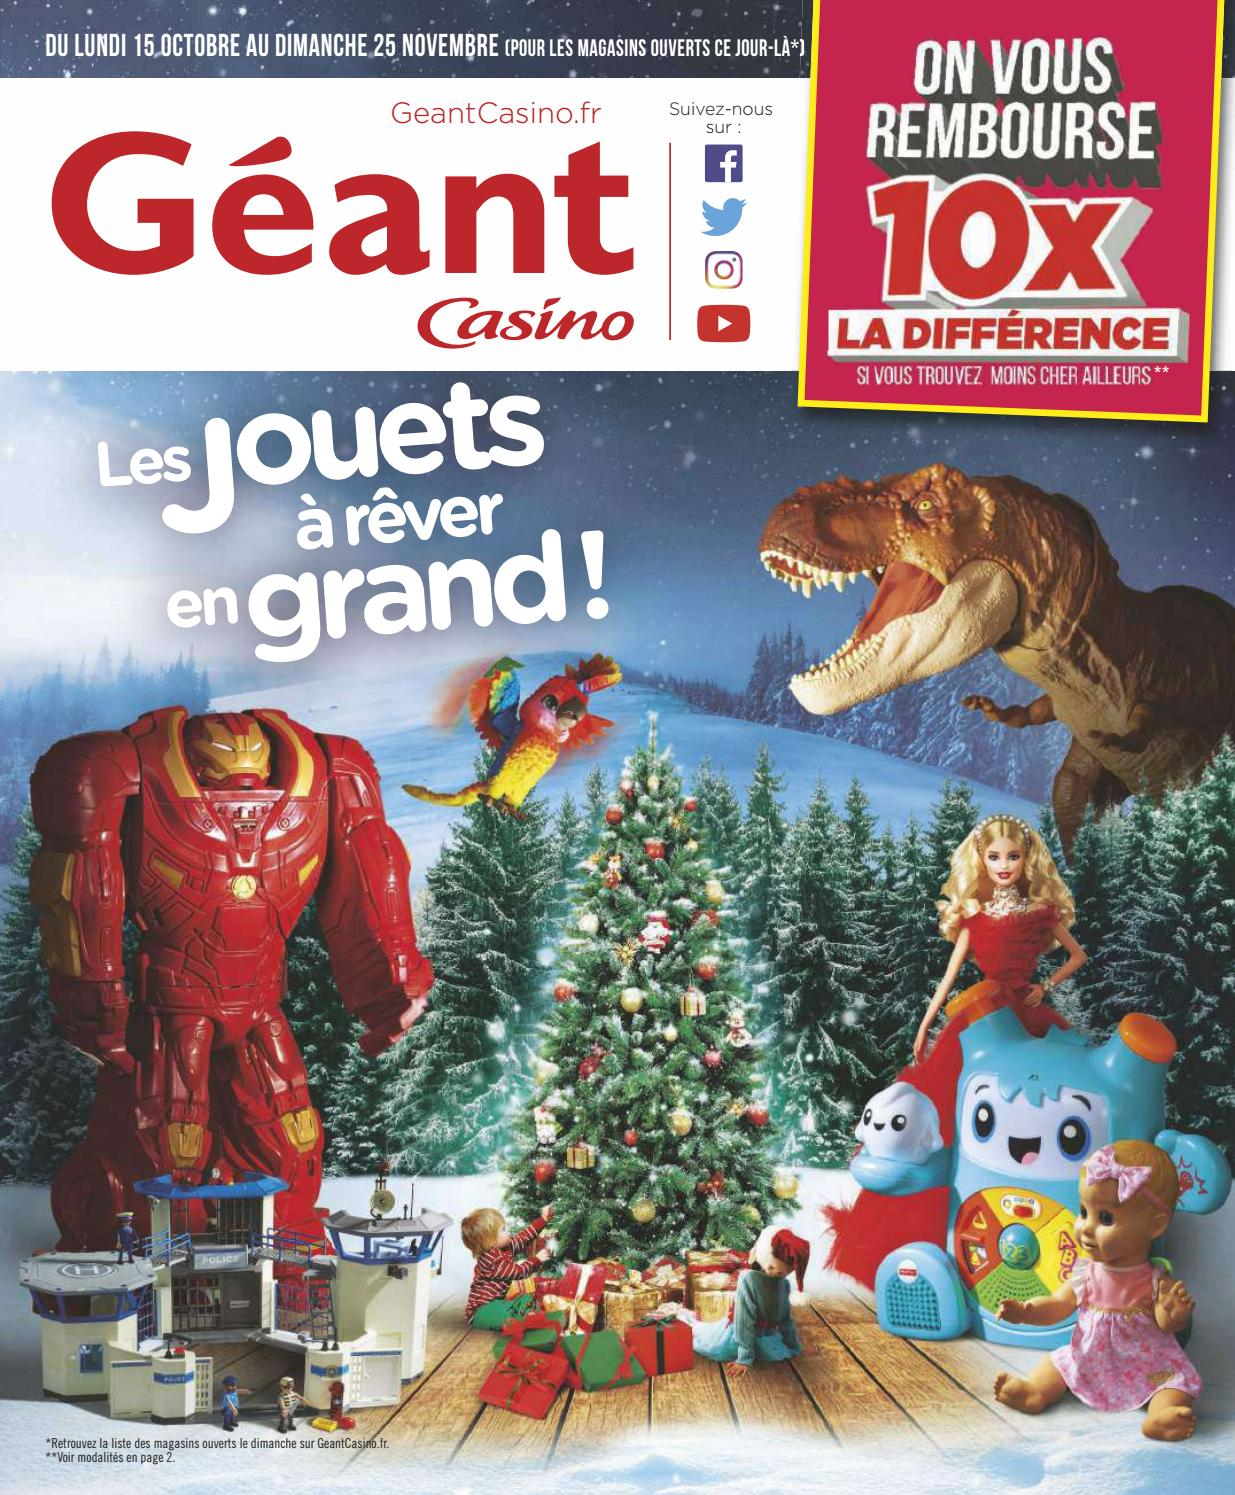 Helicoptere Radiocommande Exterieur Geant Catalogue Jouets Noël 2018 Géant Casino By Yvernault Issuu